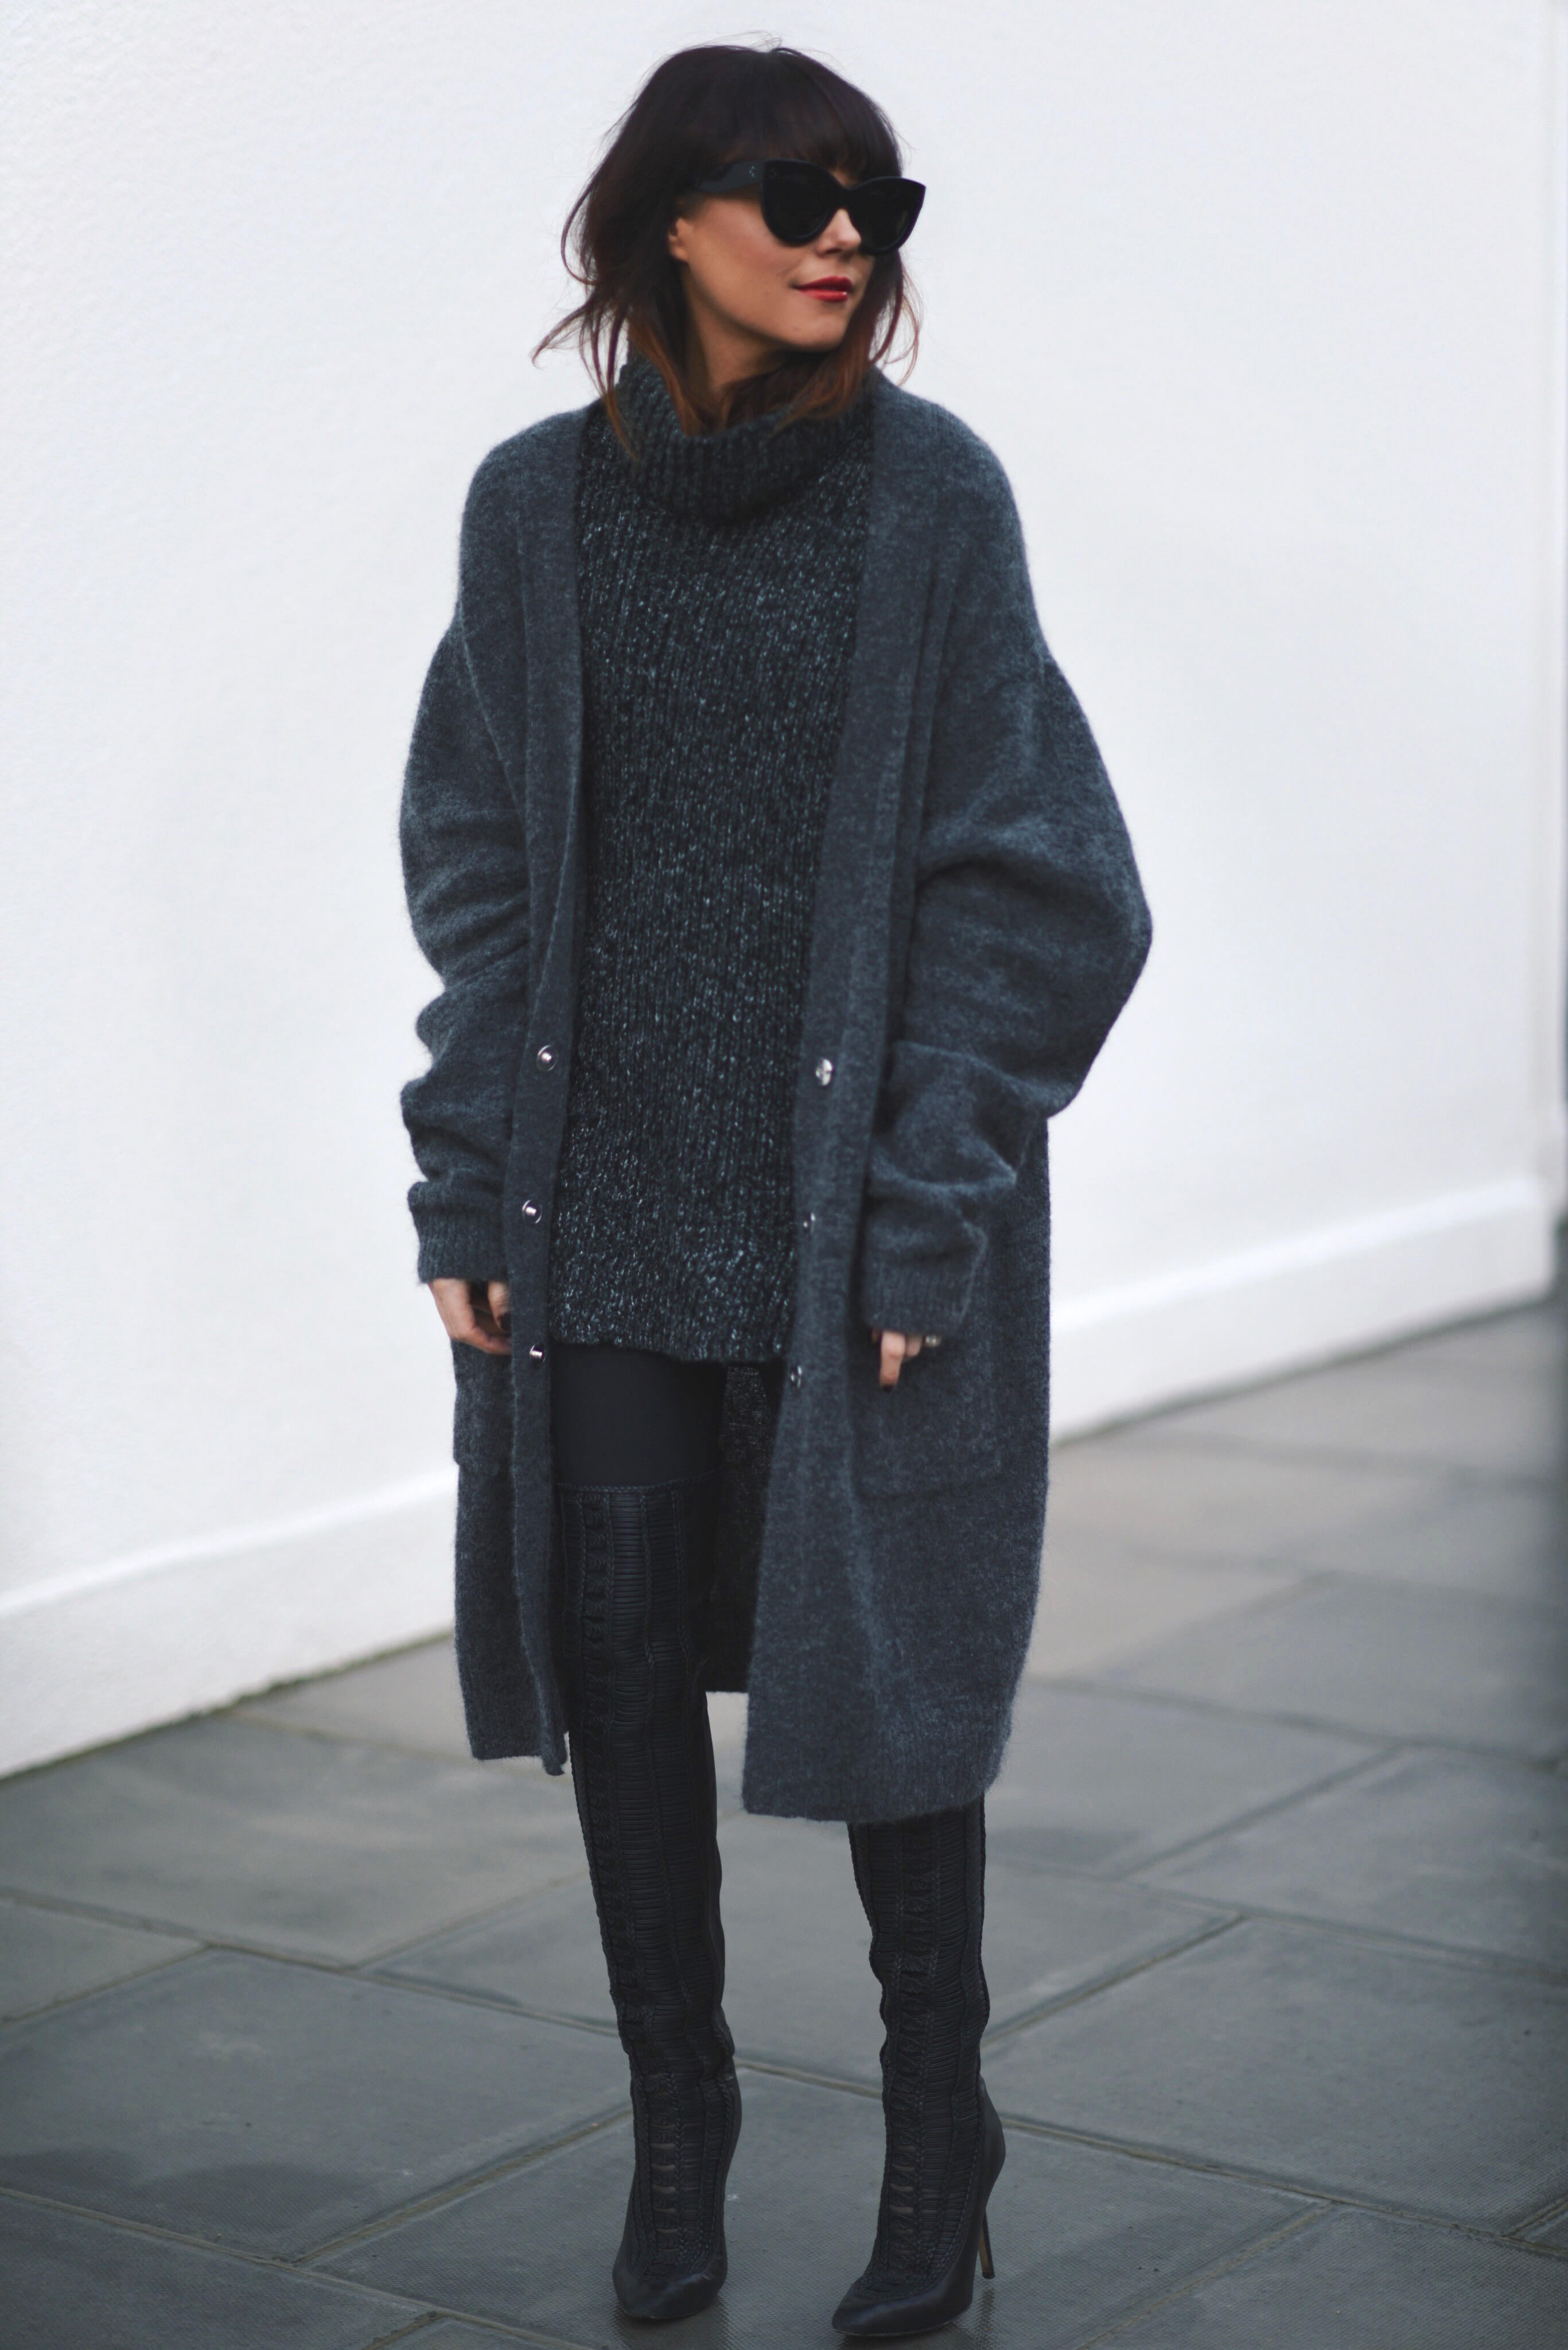 mohair knit cardigan layered over chunky knit turtleneck